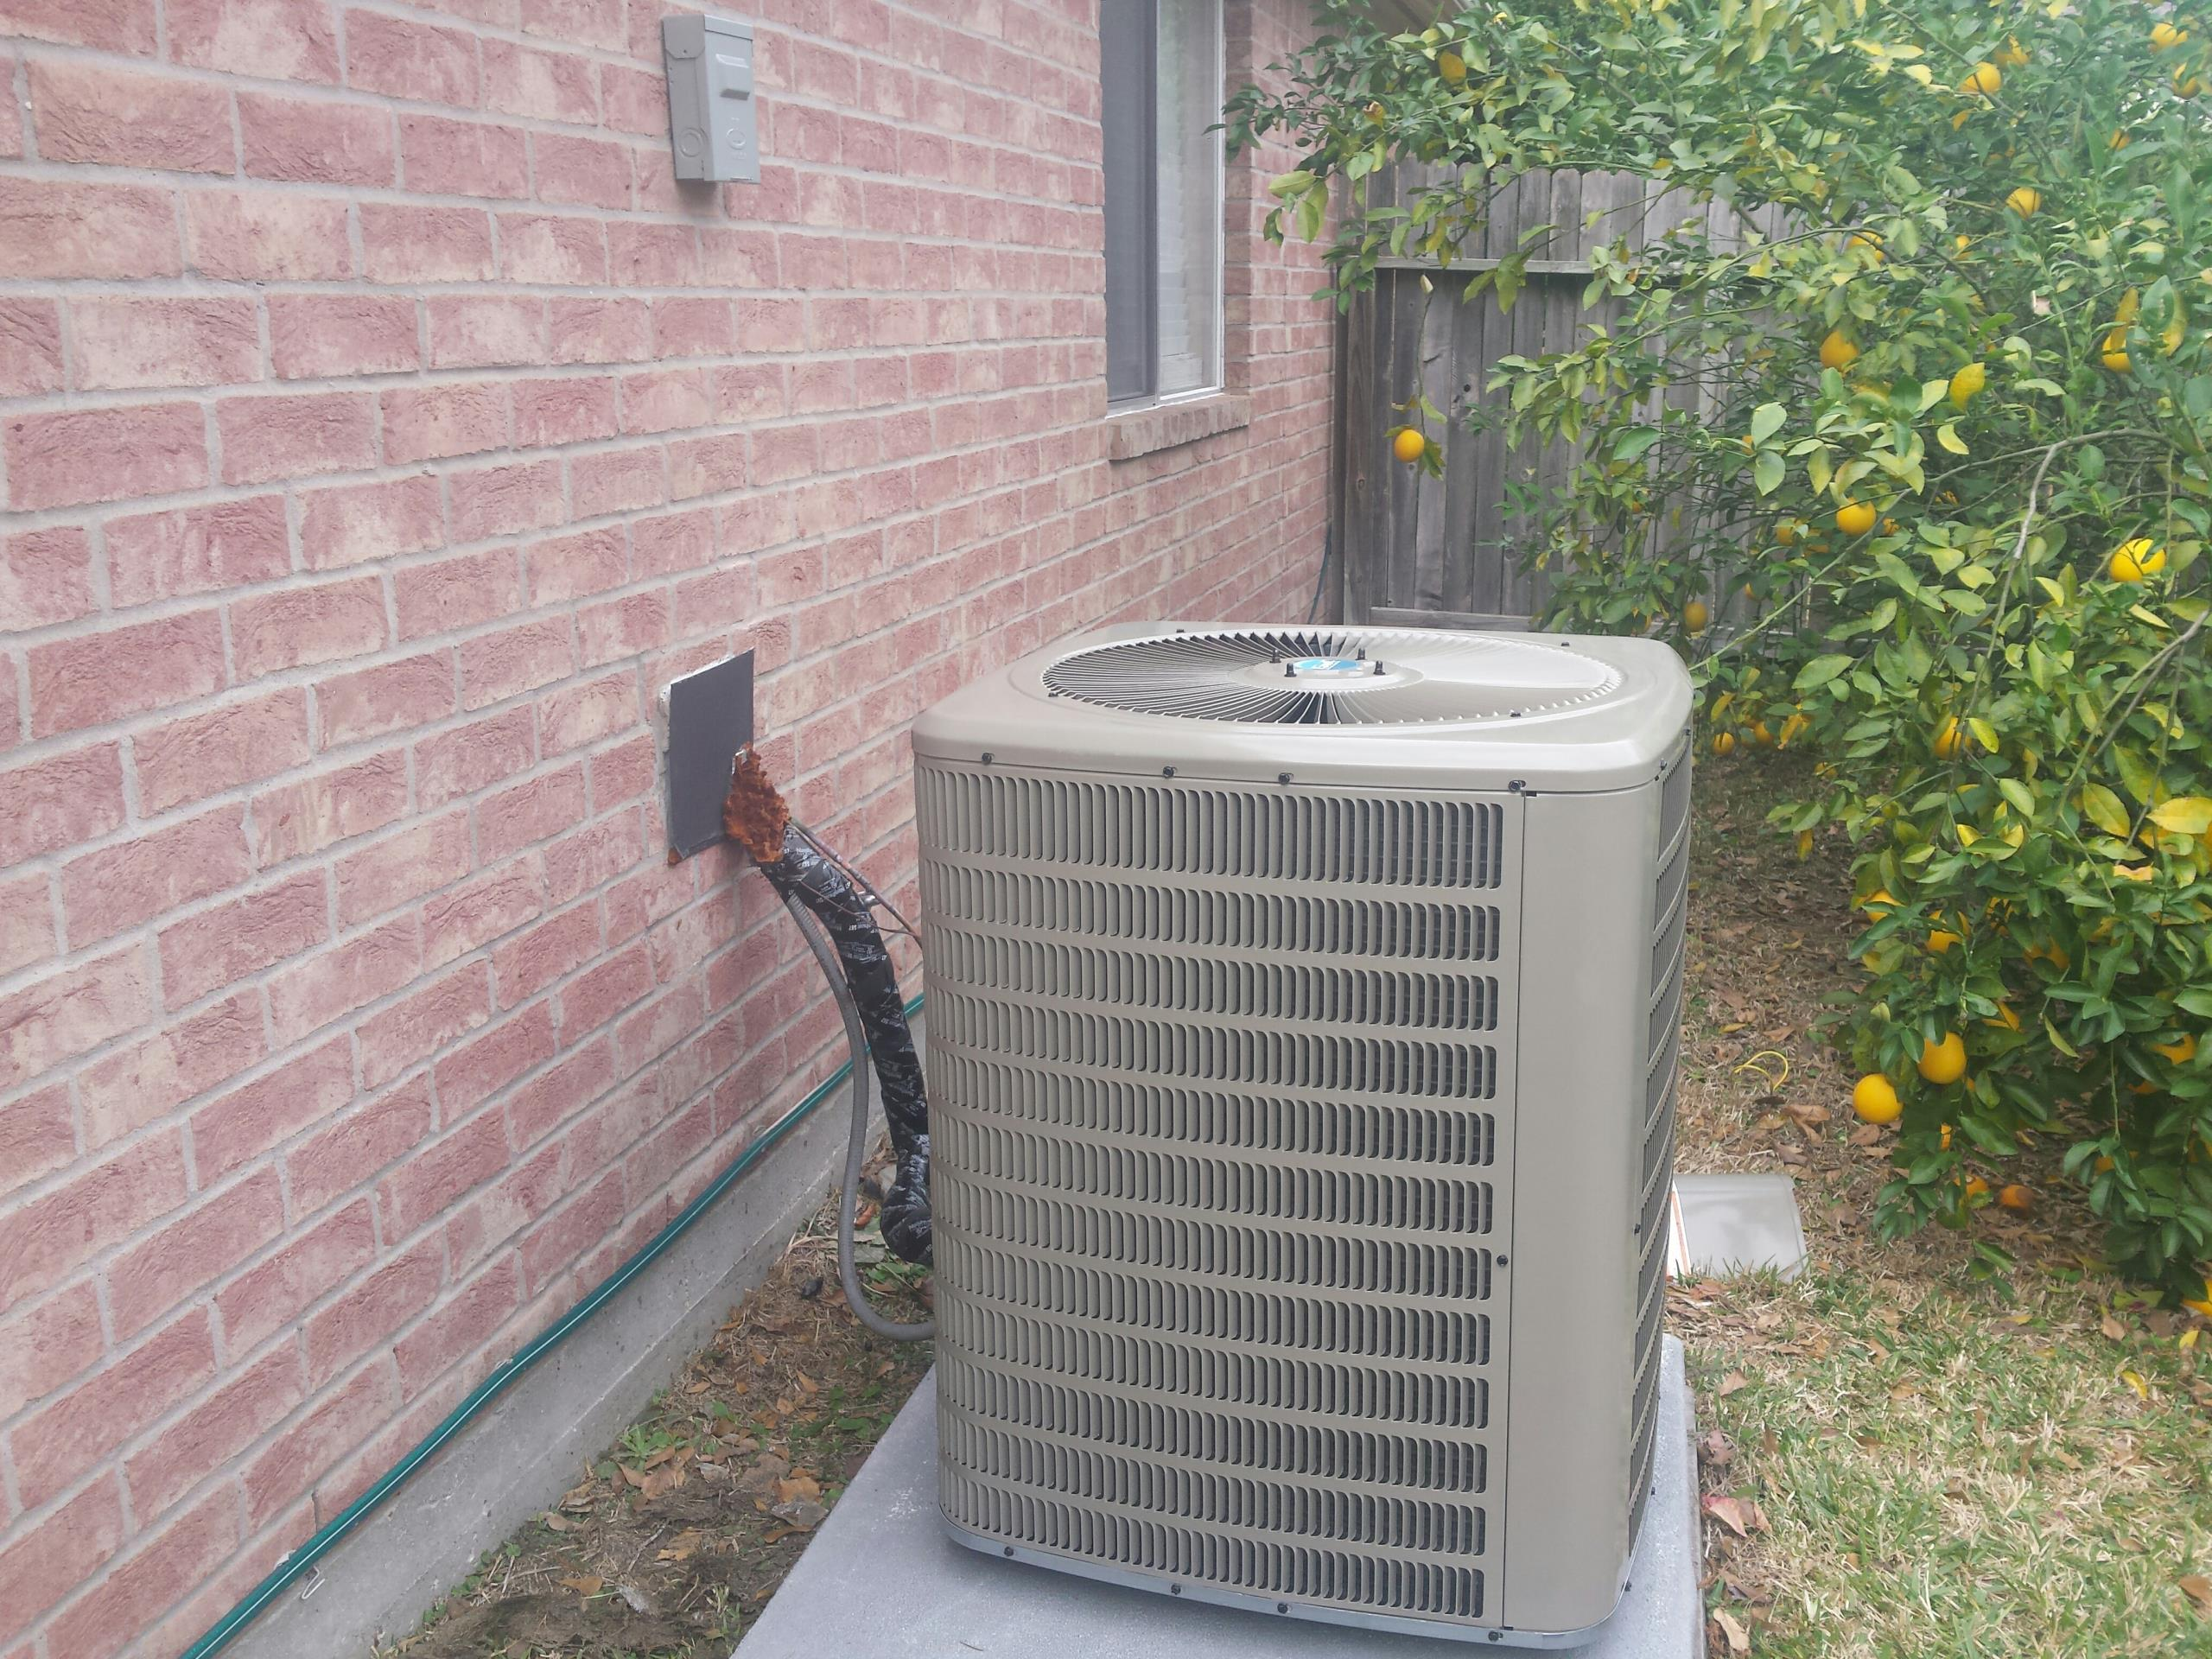 Cypress, TX - Long time customer. R22 Freon to R410a conversion. Avoid high freon prices upgrade AC system to R410a.